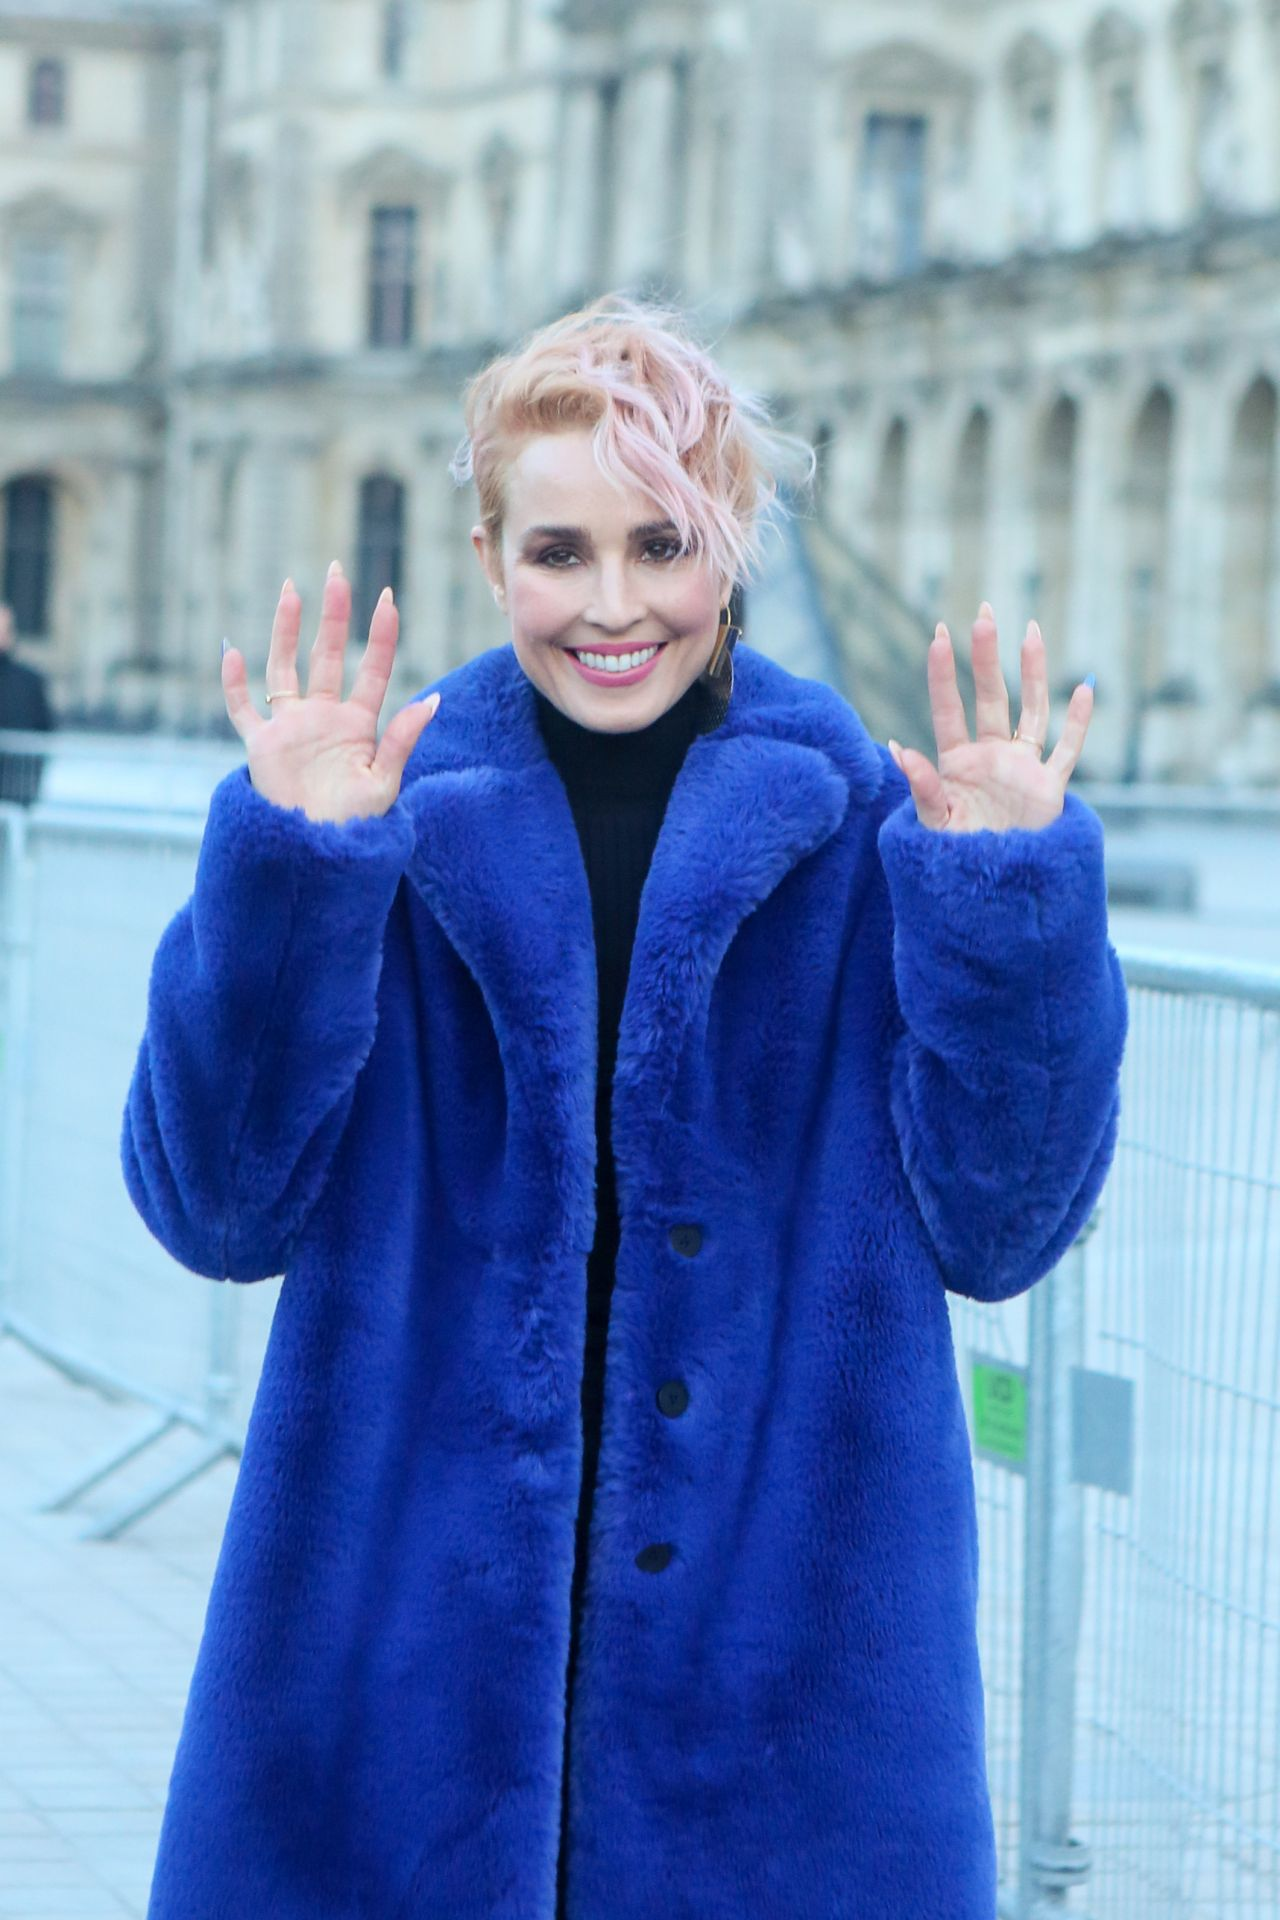 http://celebmafia.com/wp-content/uploads/2018/03/noomi-rapace-louis-vuitton-fashion-show-in-paris-03-06-2018-2.jpg